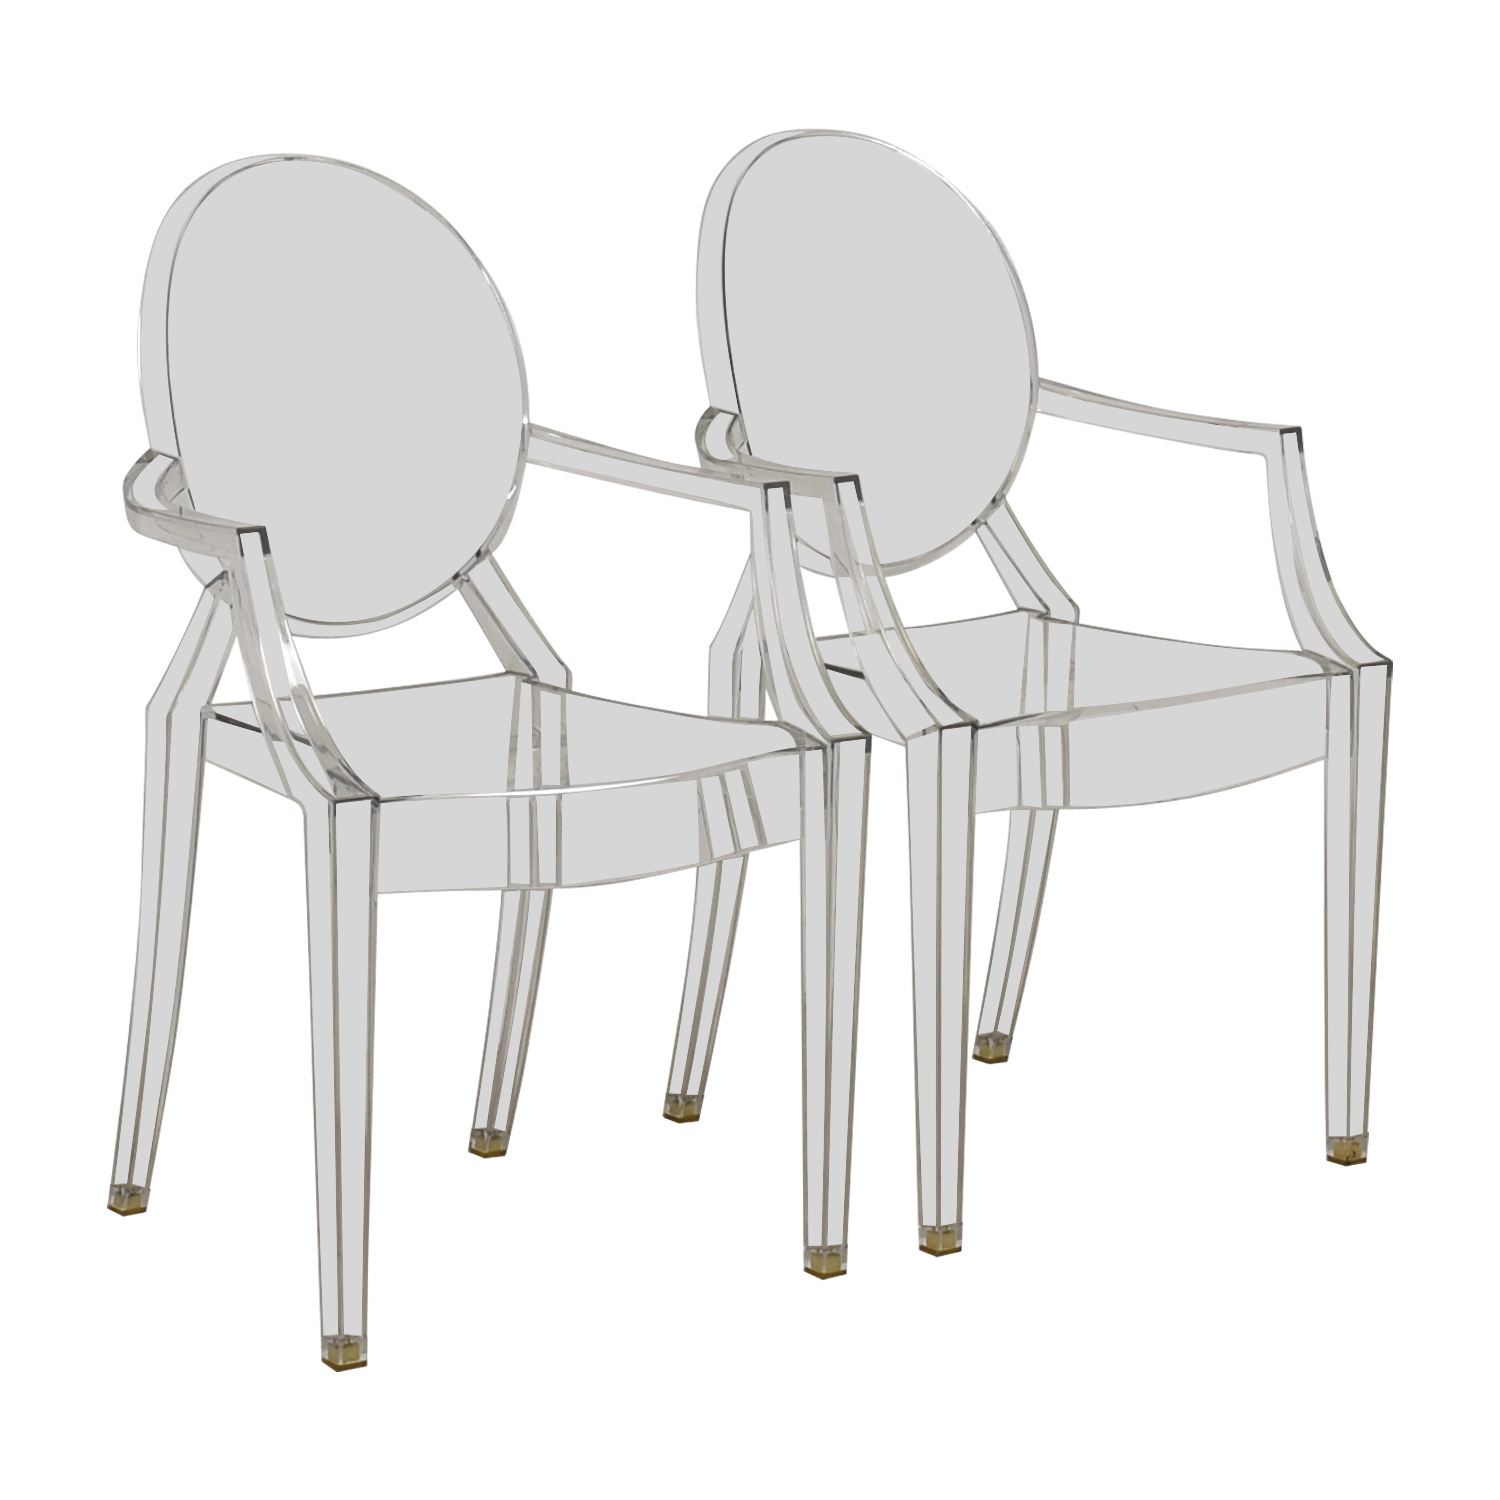 buy Kartell Kartell Philippe Starck Louis Ghost Arm Chairs online